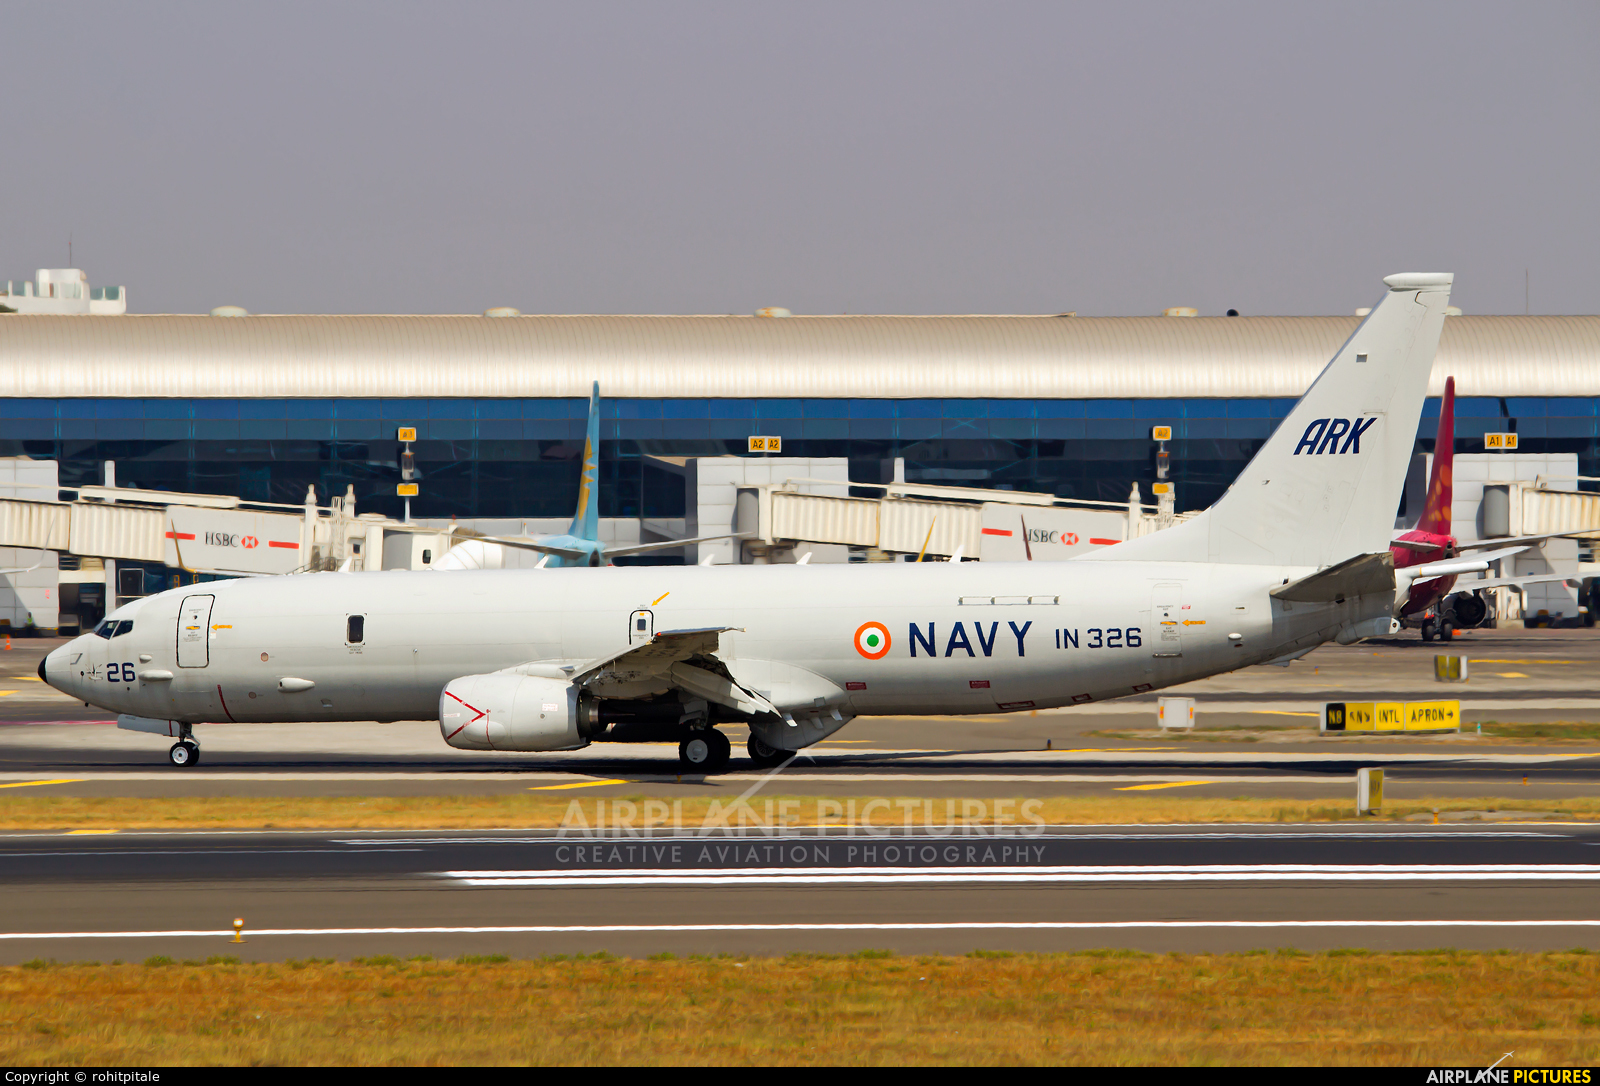 India - Navy IN326 aircraft at Mumbai - Chhatrapati Shivaji Intl